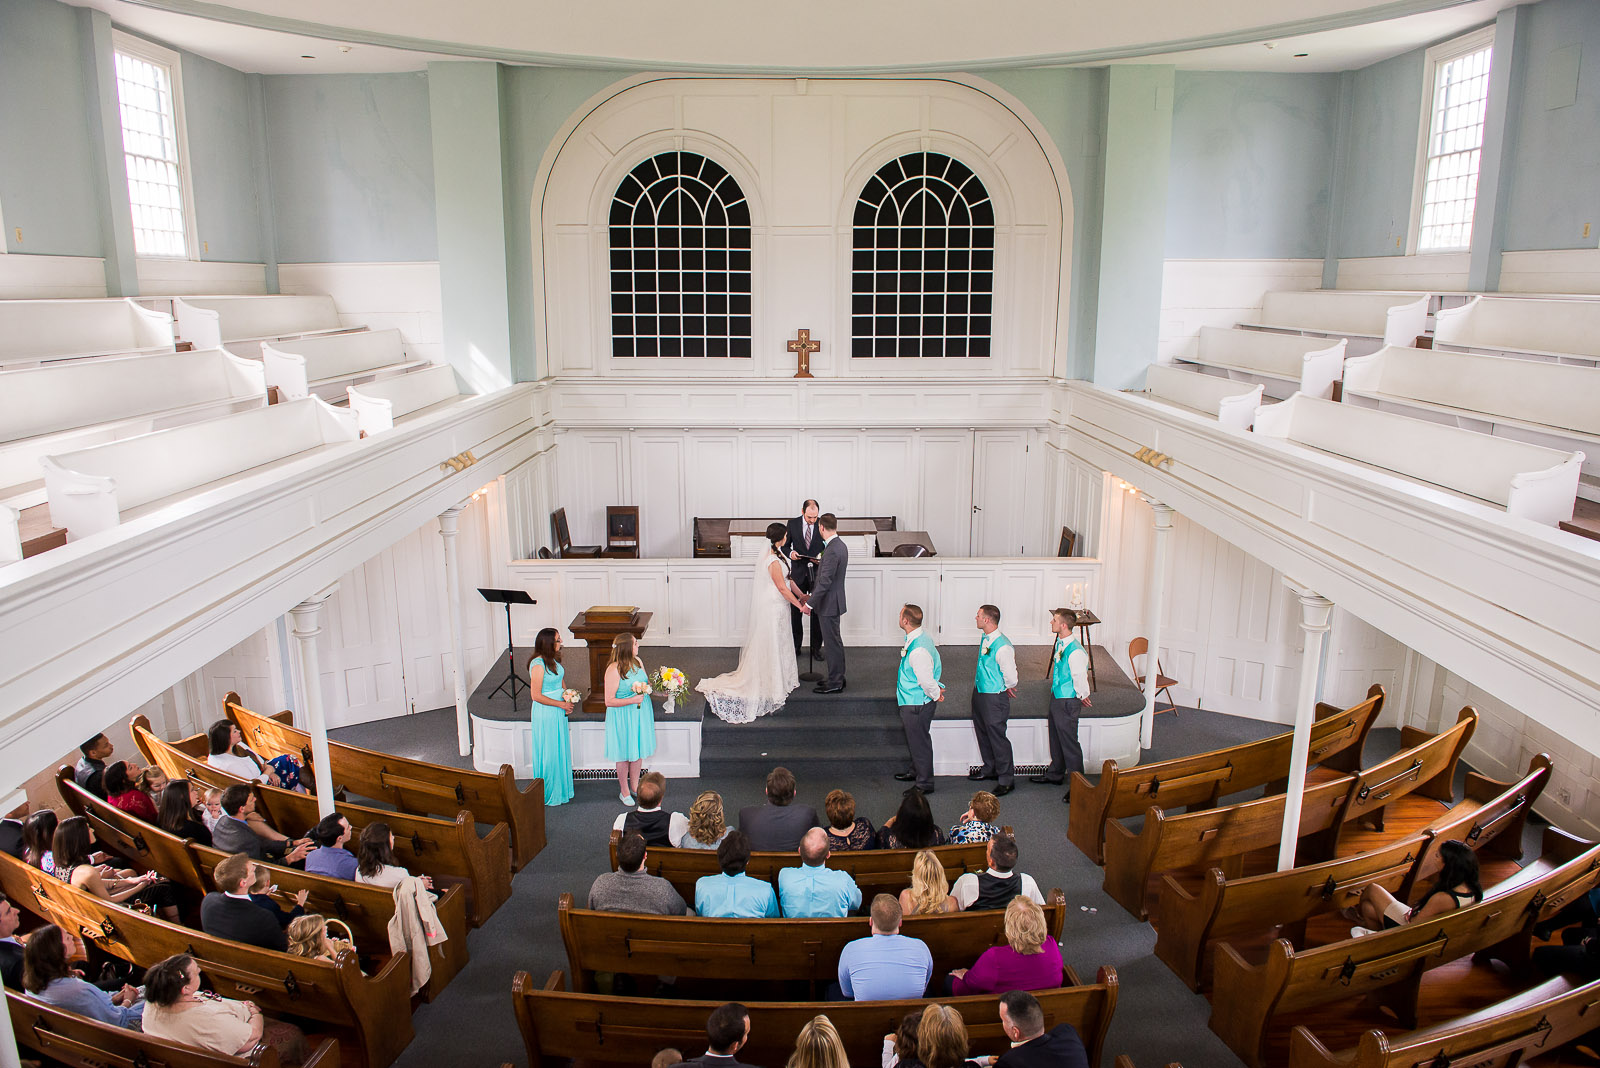 Eric_and_Christy_Photography_Blog_Katie_Travis_Wedding-44